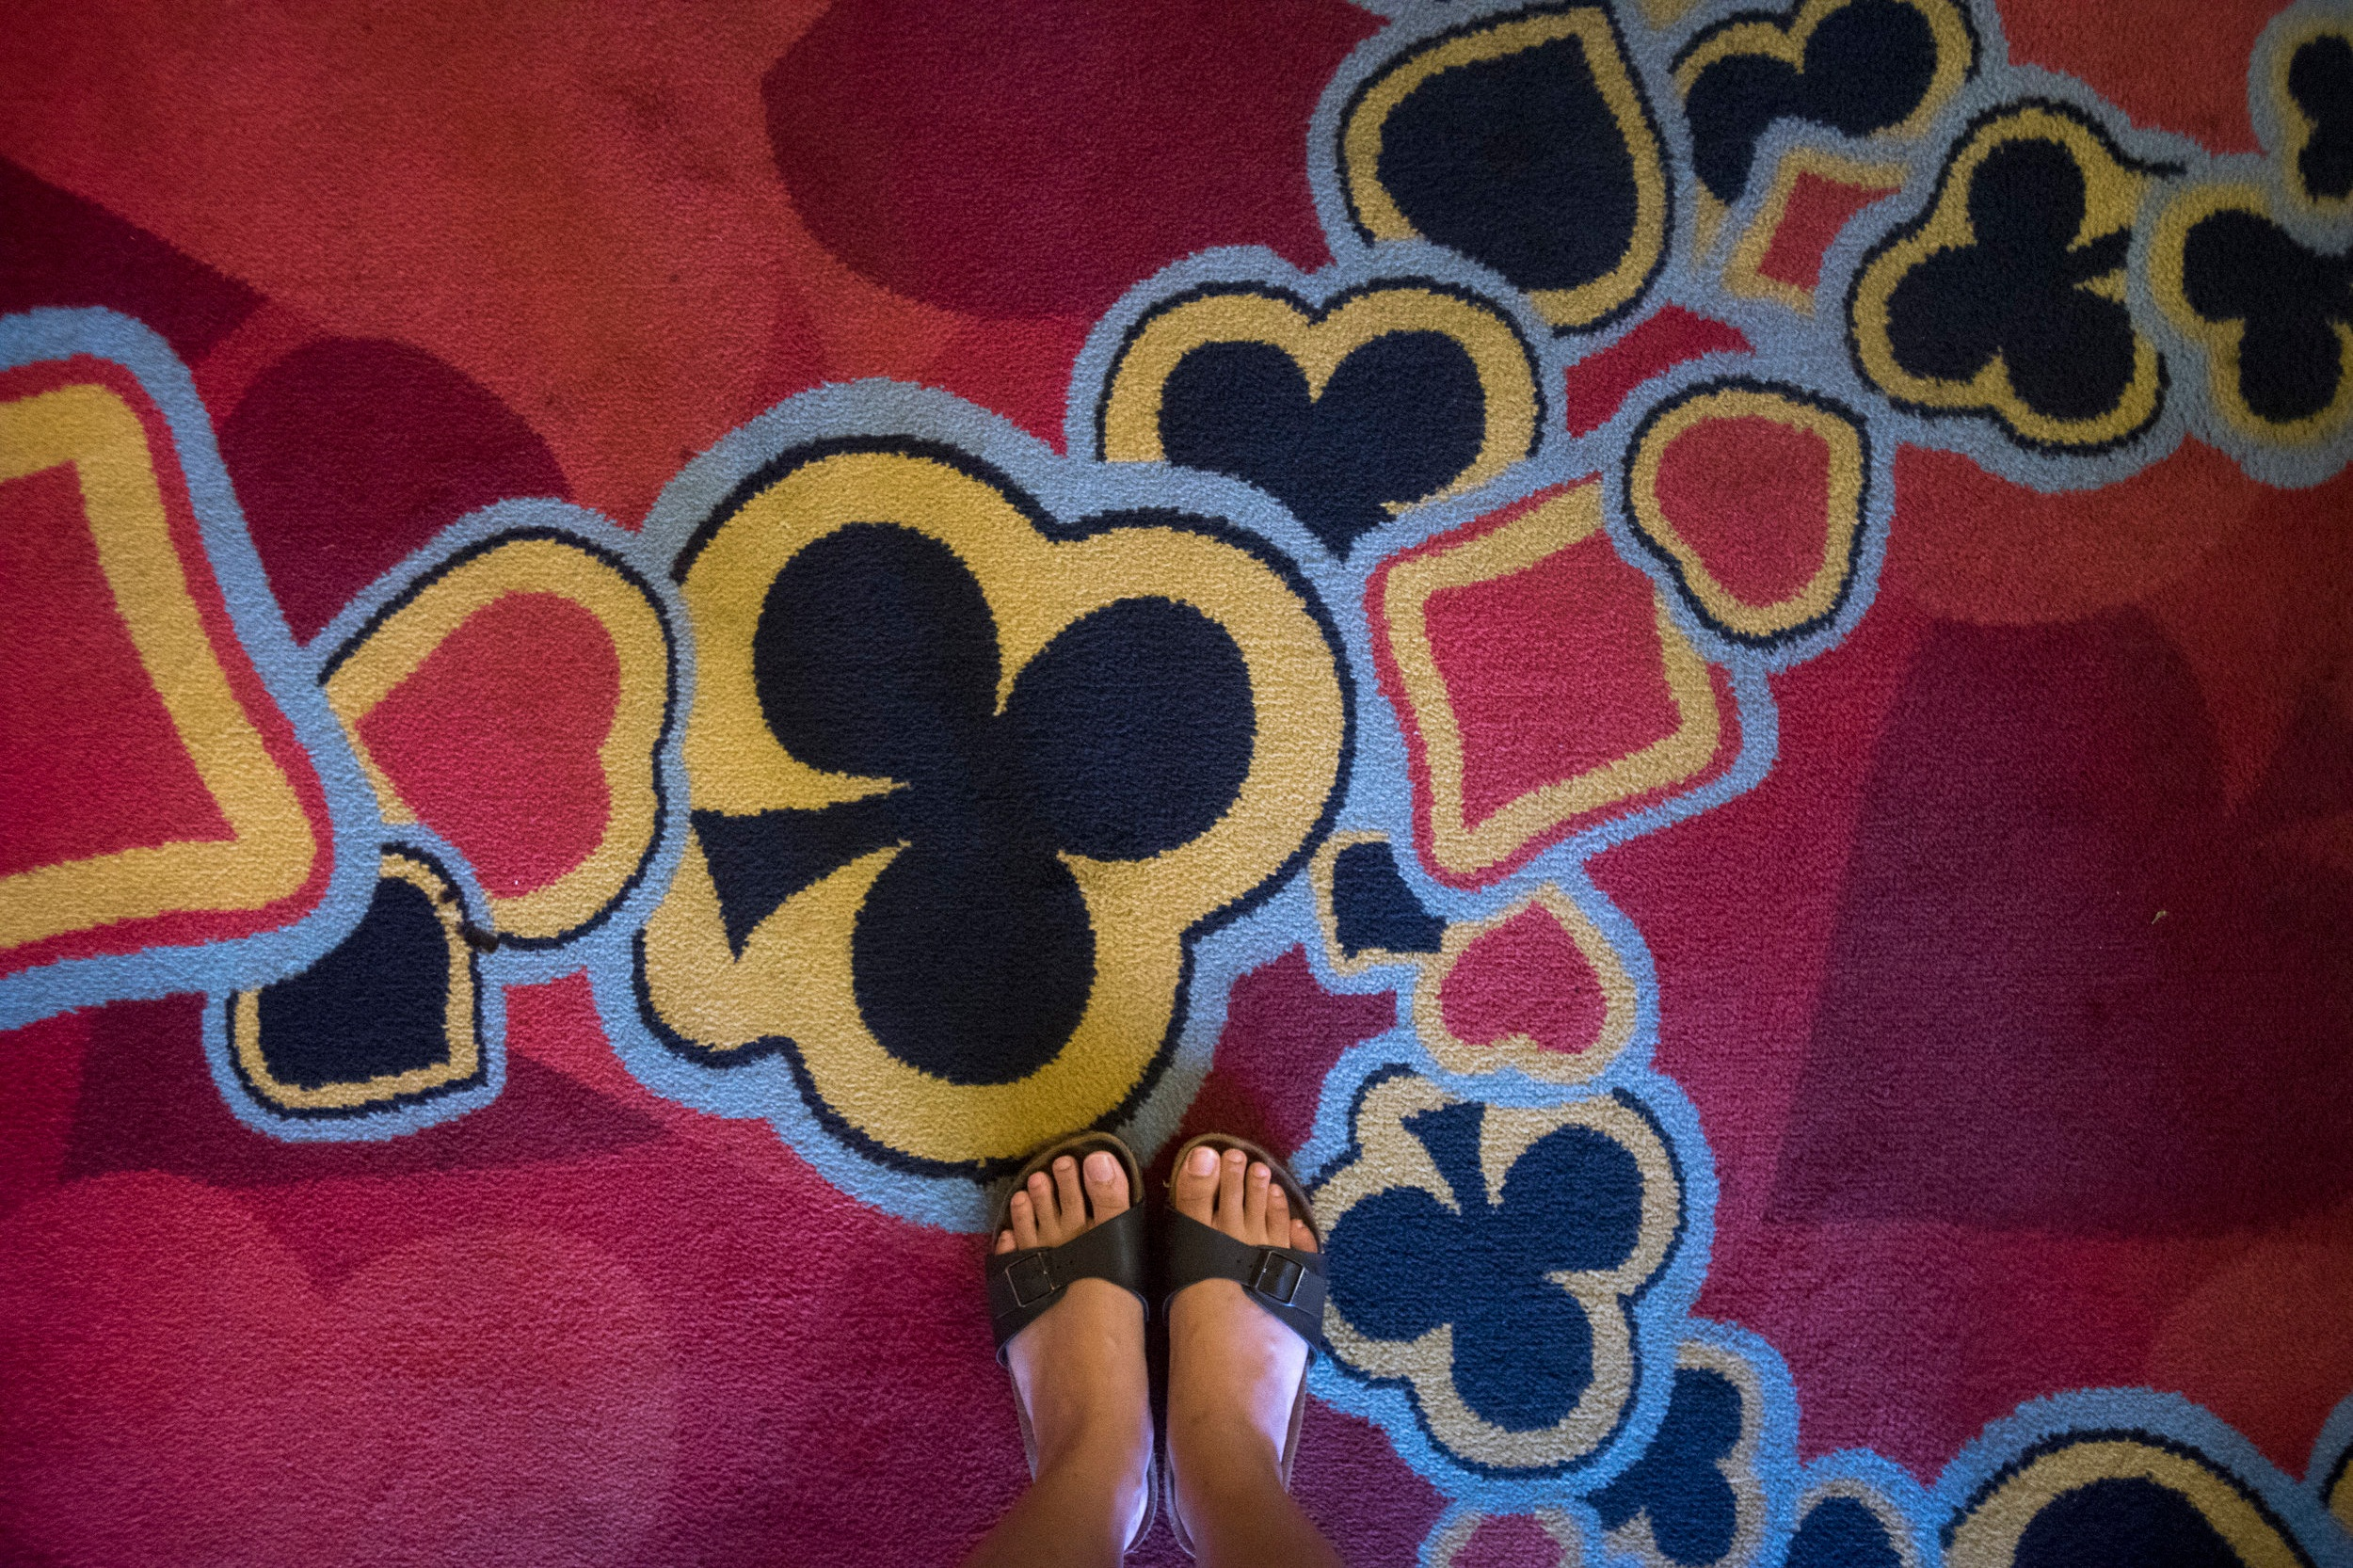 Gambling motifs adorn the carpeting of the M/V Amusement World, which was built in 1967, as pictured on March 15, 2018.